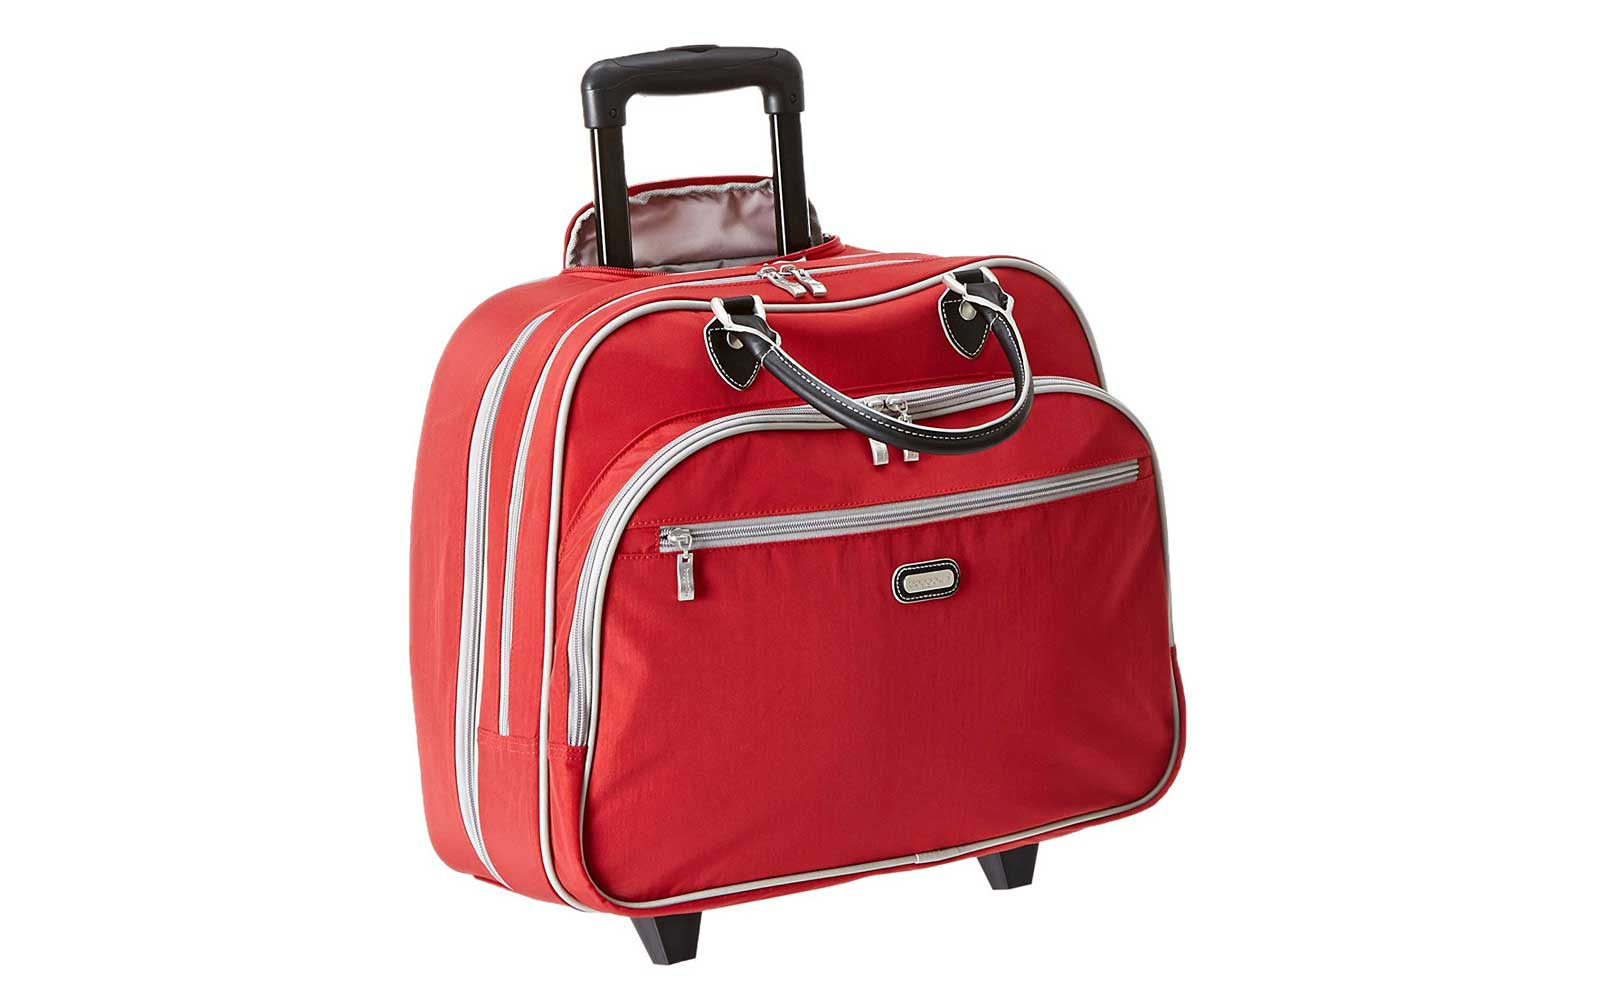 Baggallini Rolling 17-inch Tote